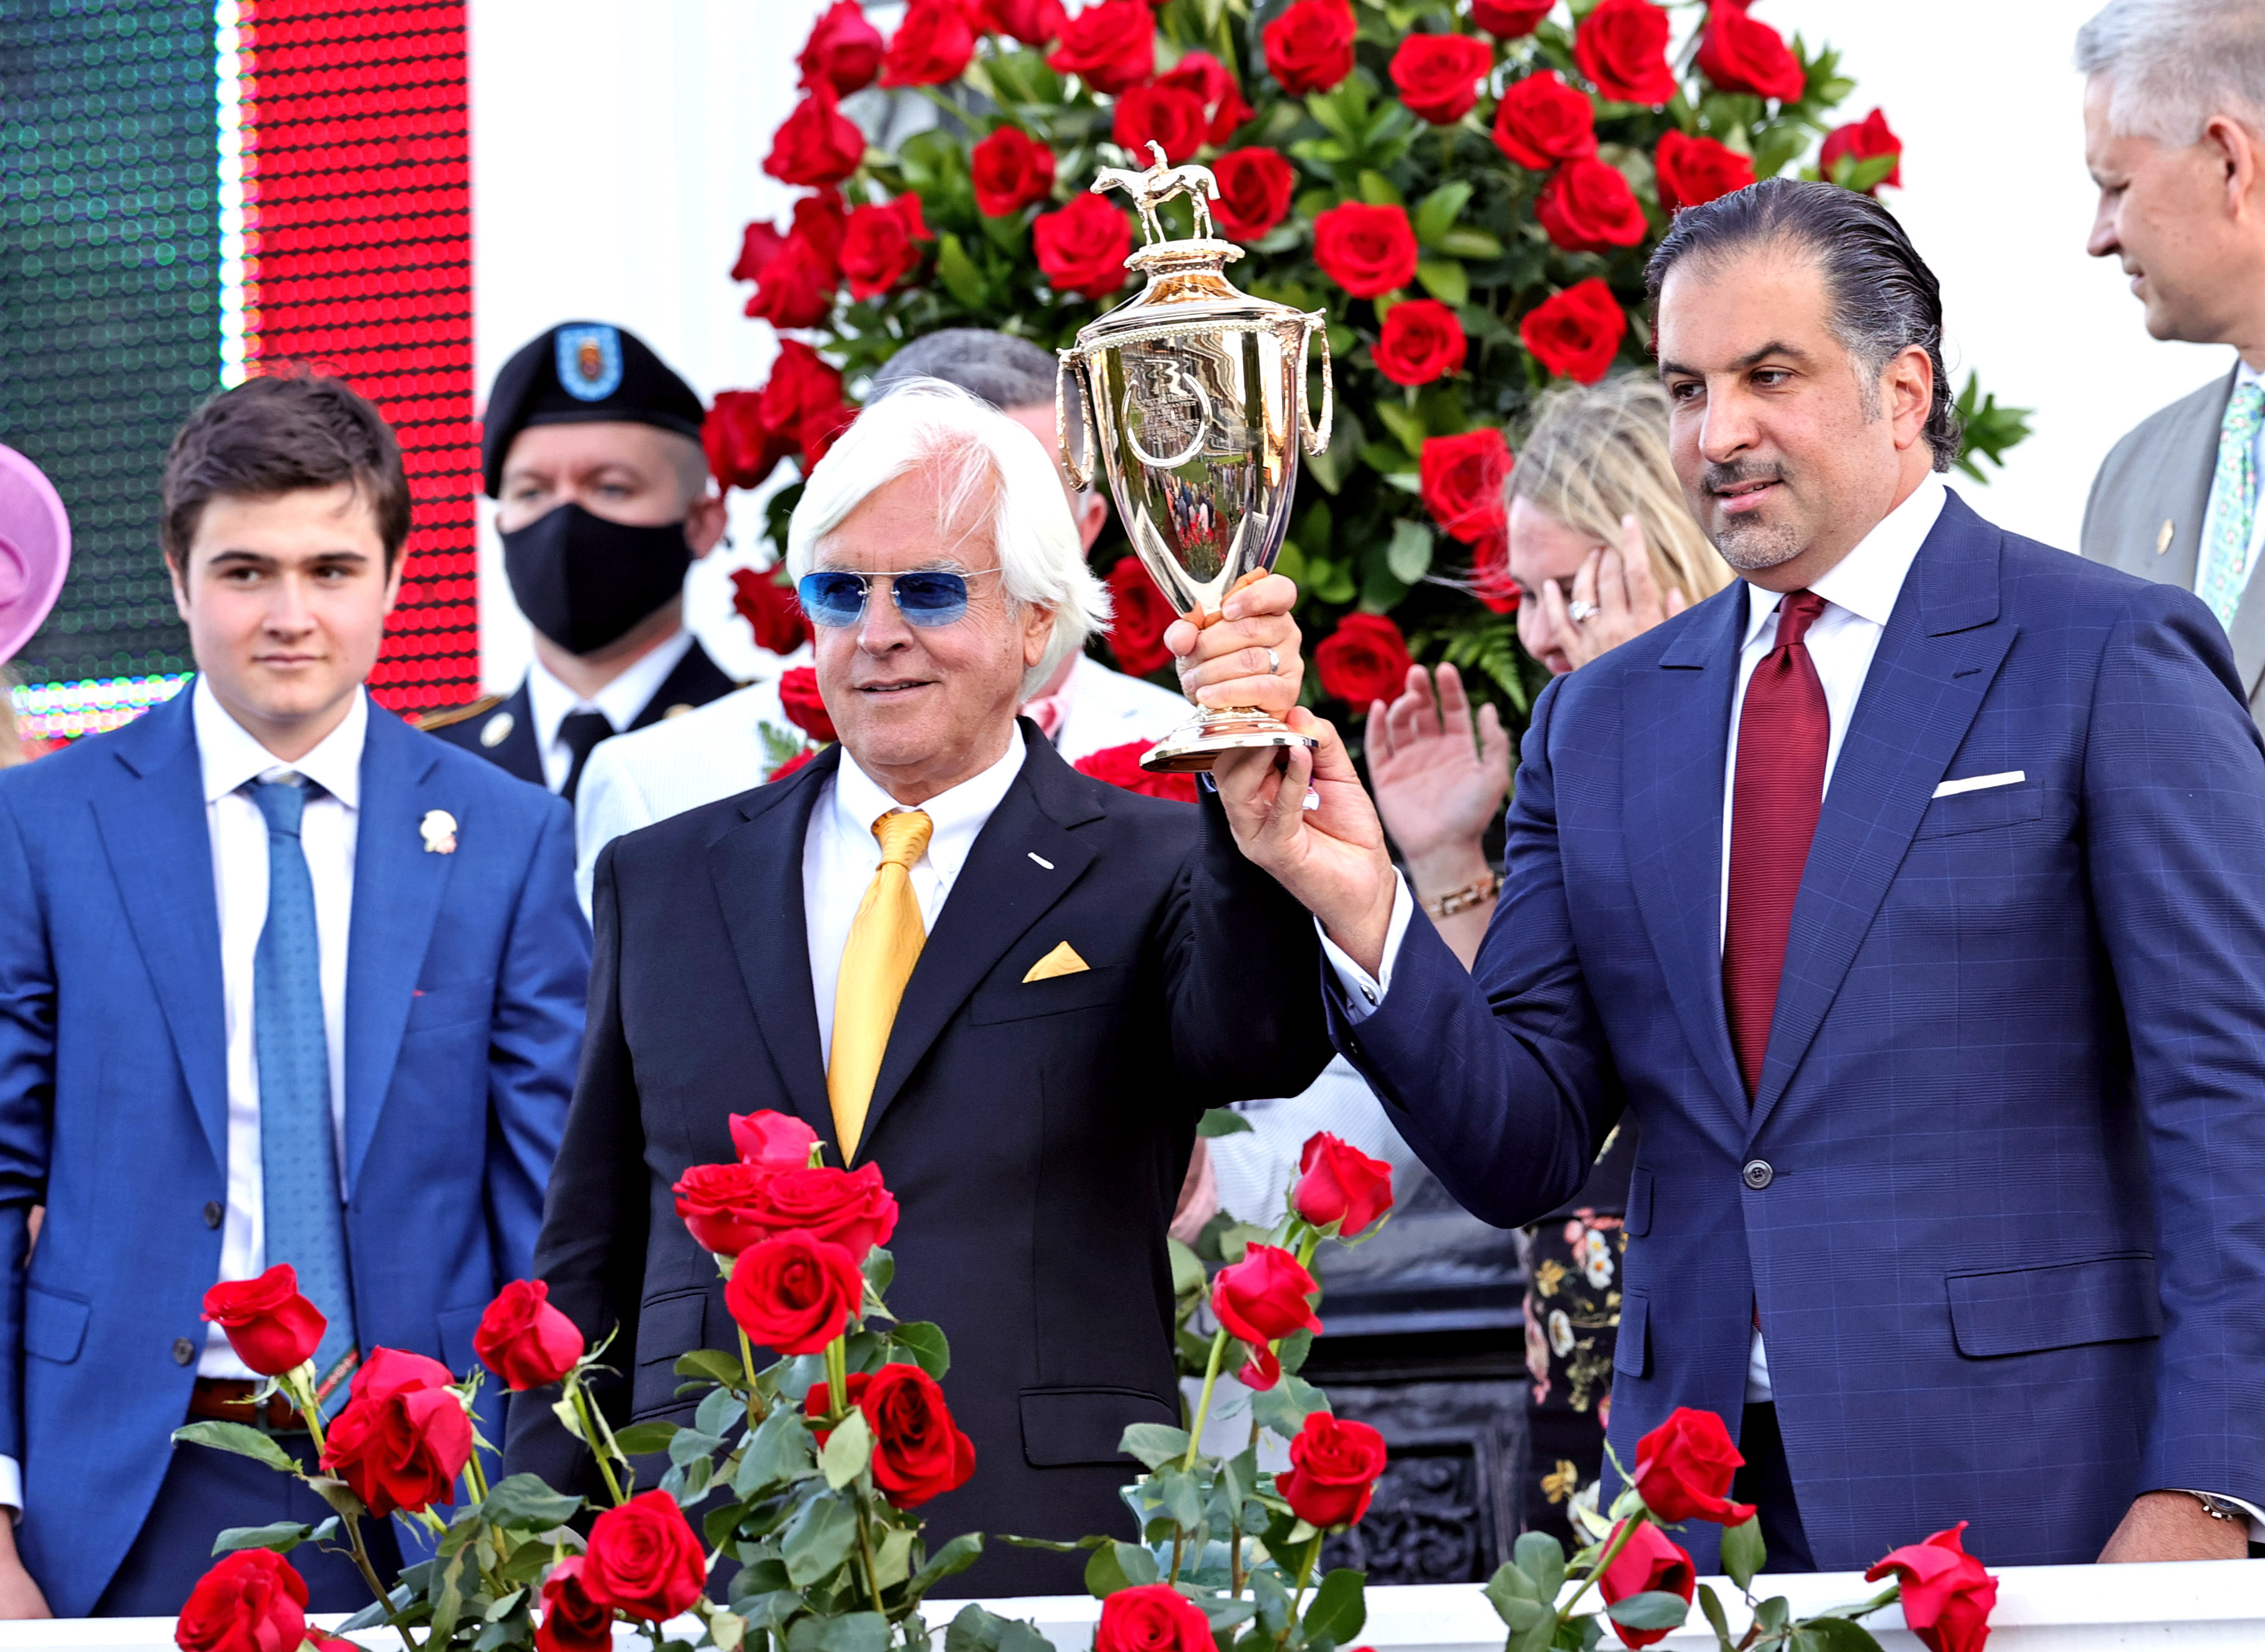 May 1, 2021; Louisville, Kentucky, USA; Medina Spirit owner Amr F. Zedan (right) and trainer Bob Baffert hold the trophy after winning the 147th running of the Kentucky Derby at Churchill Downs. Mandatory Credit: Jim Owens-USA TODAY Sports